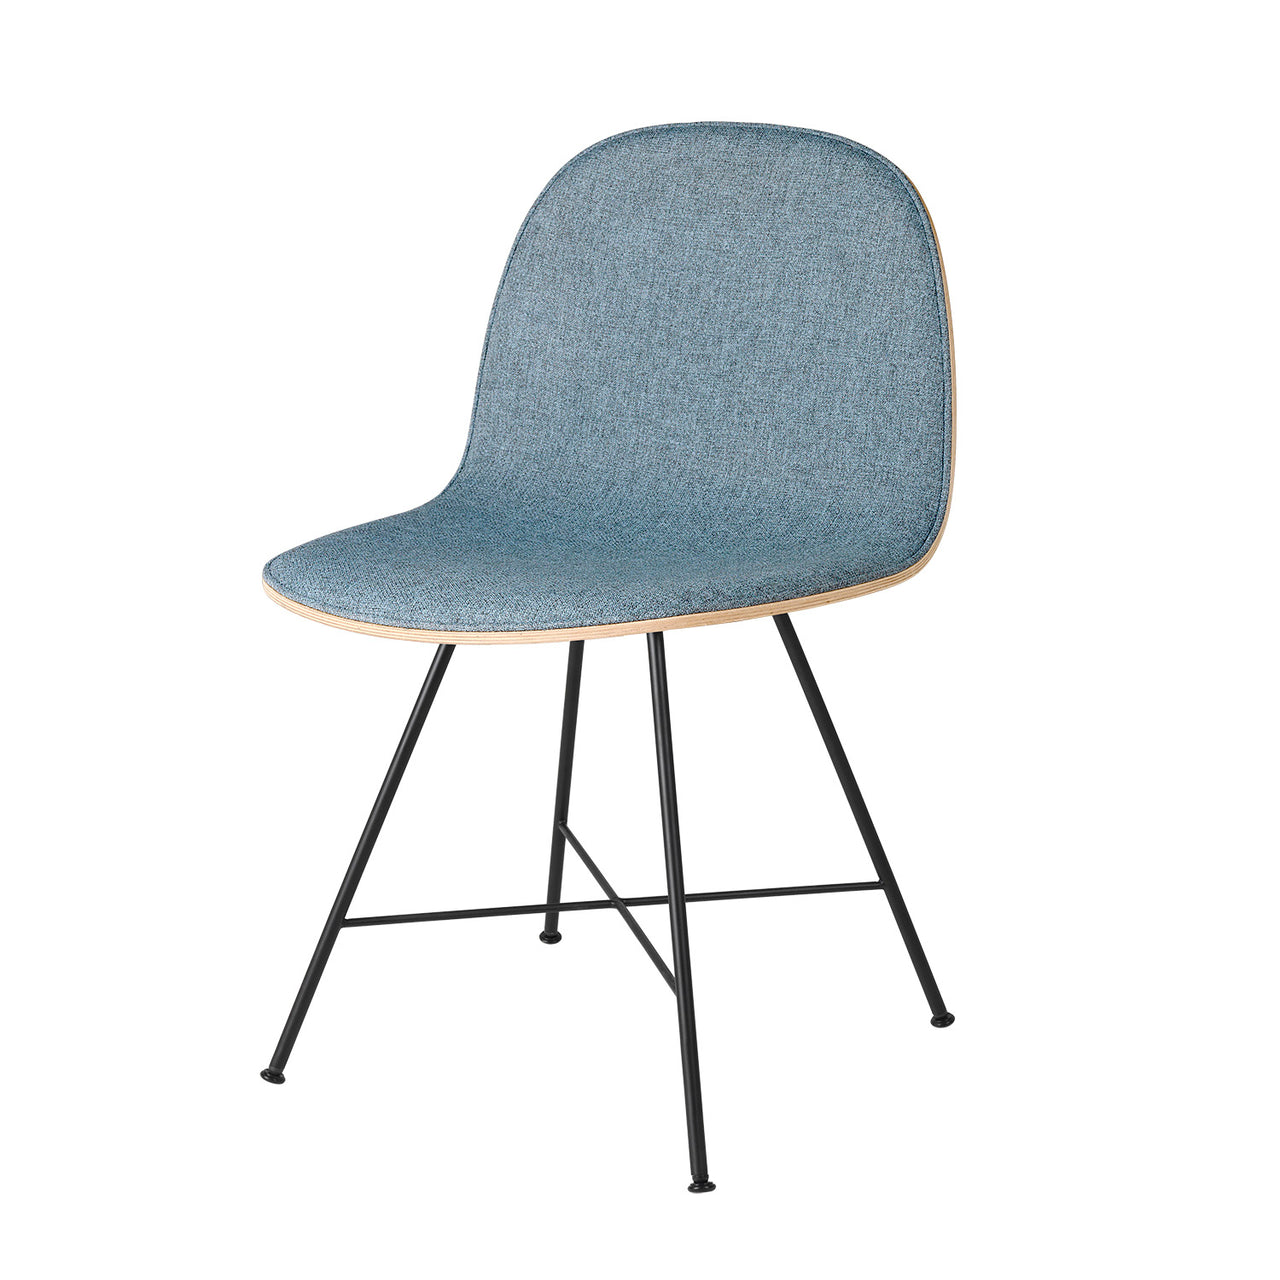 2D Dining Chair: Center Base + Front Upholstery